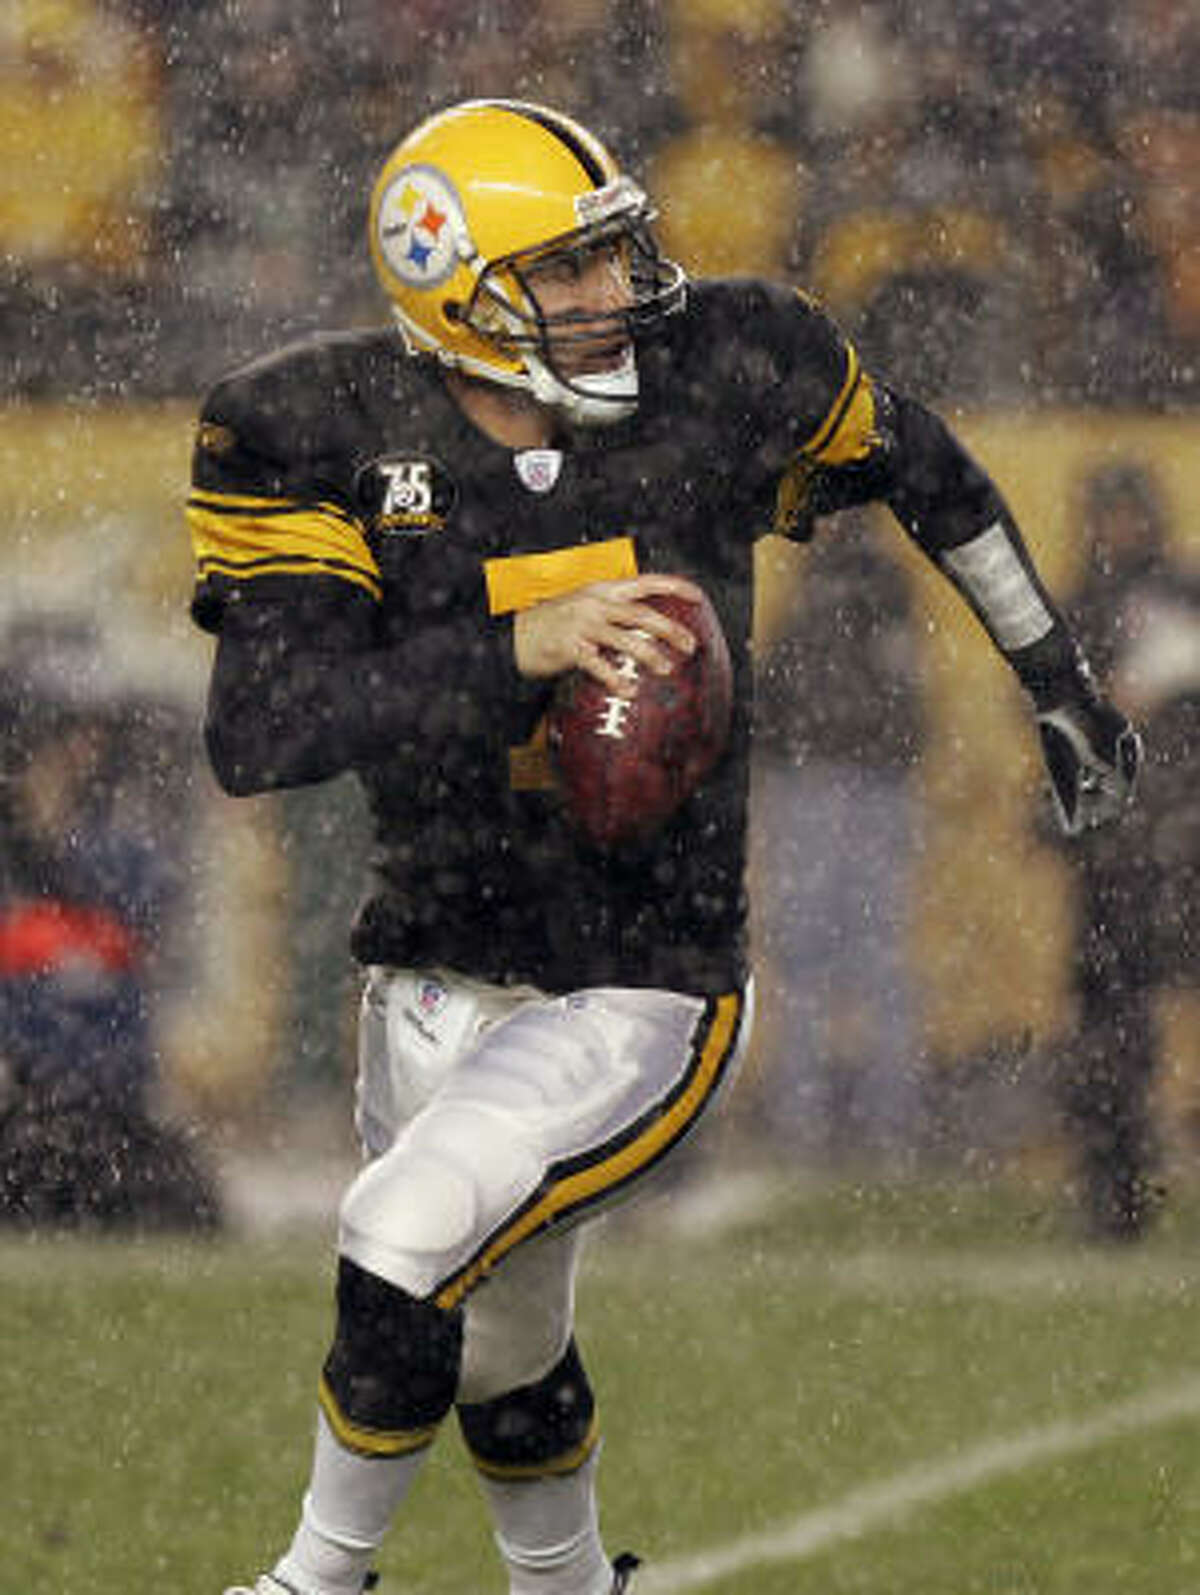 2007 : Ben Roethlisberger started 15 games for the Steelers and was sacked 47 times that season. They finished with a 10-6 record and lost the wild-card game to the Jacksonville Jaguars.